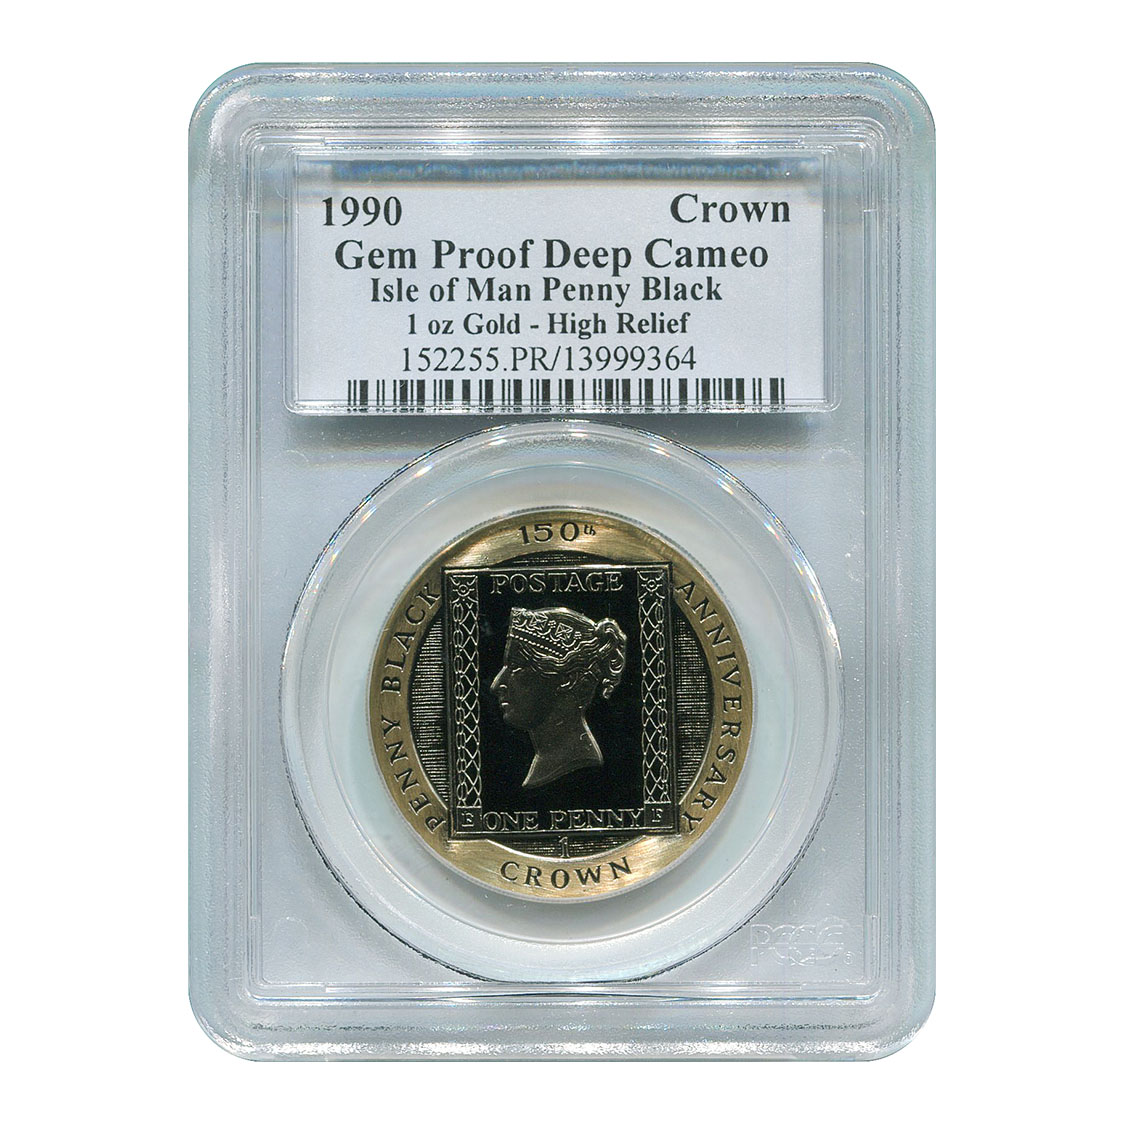 Certified Isle of Man Gold Penny Black 1990 Gem Proof Deep Cameo PCGS